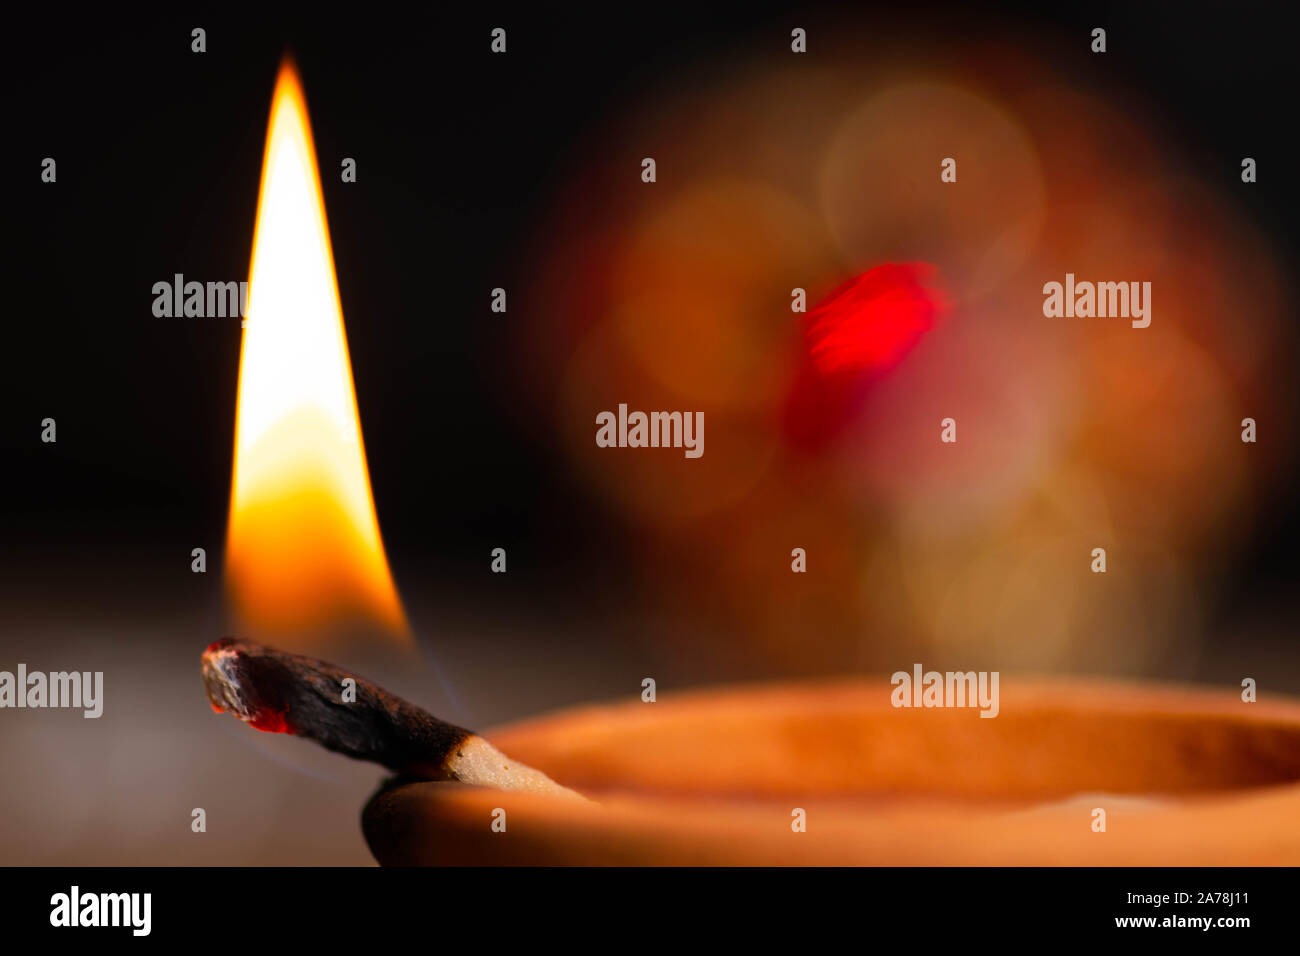 Karthigai Deepam High Resolution Stock Photography And Images Alamy